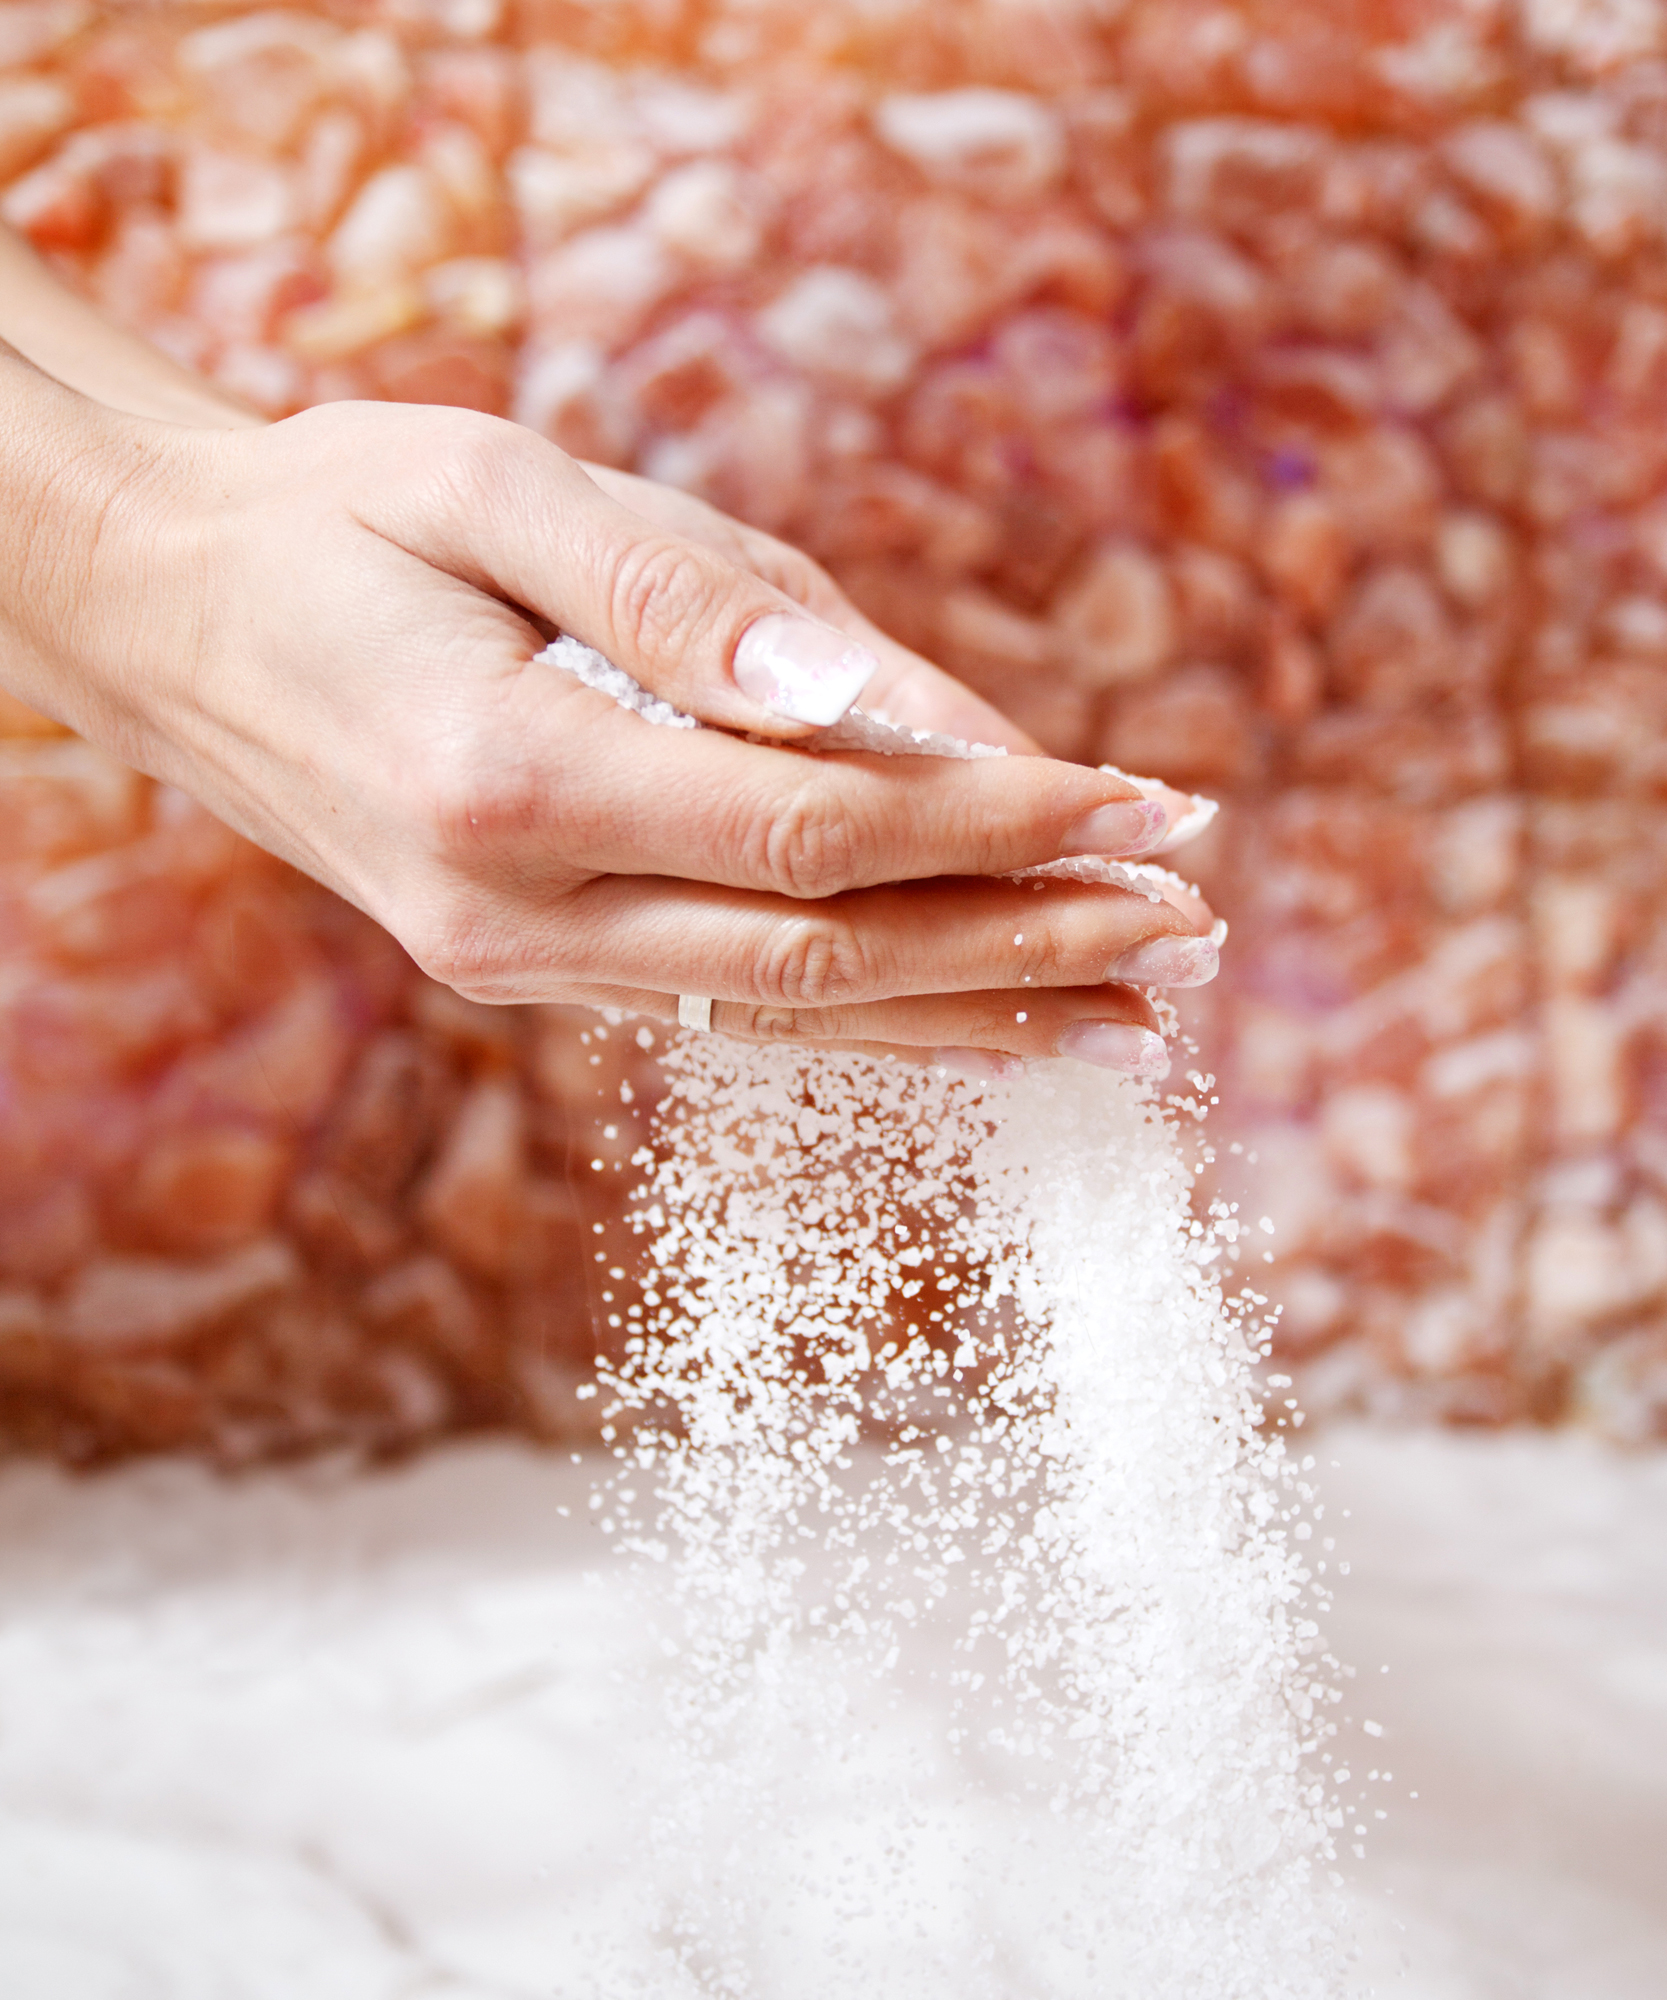 Salt Therapy Rooms MightBe the Answer to Relieving Your Seasonal Allergies